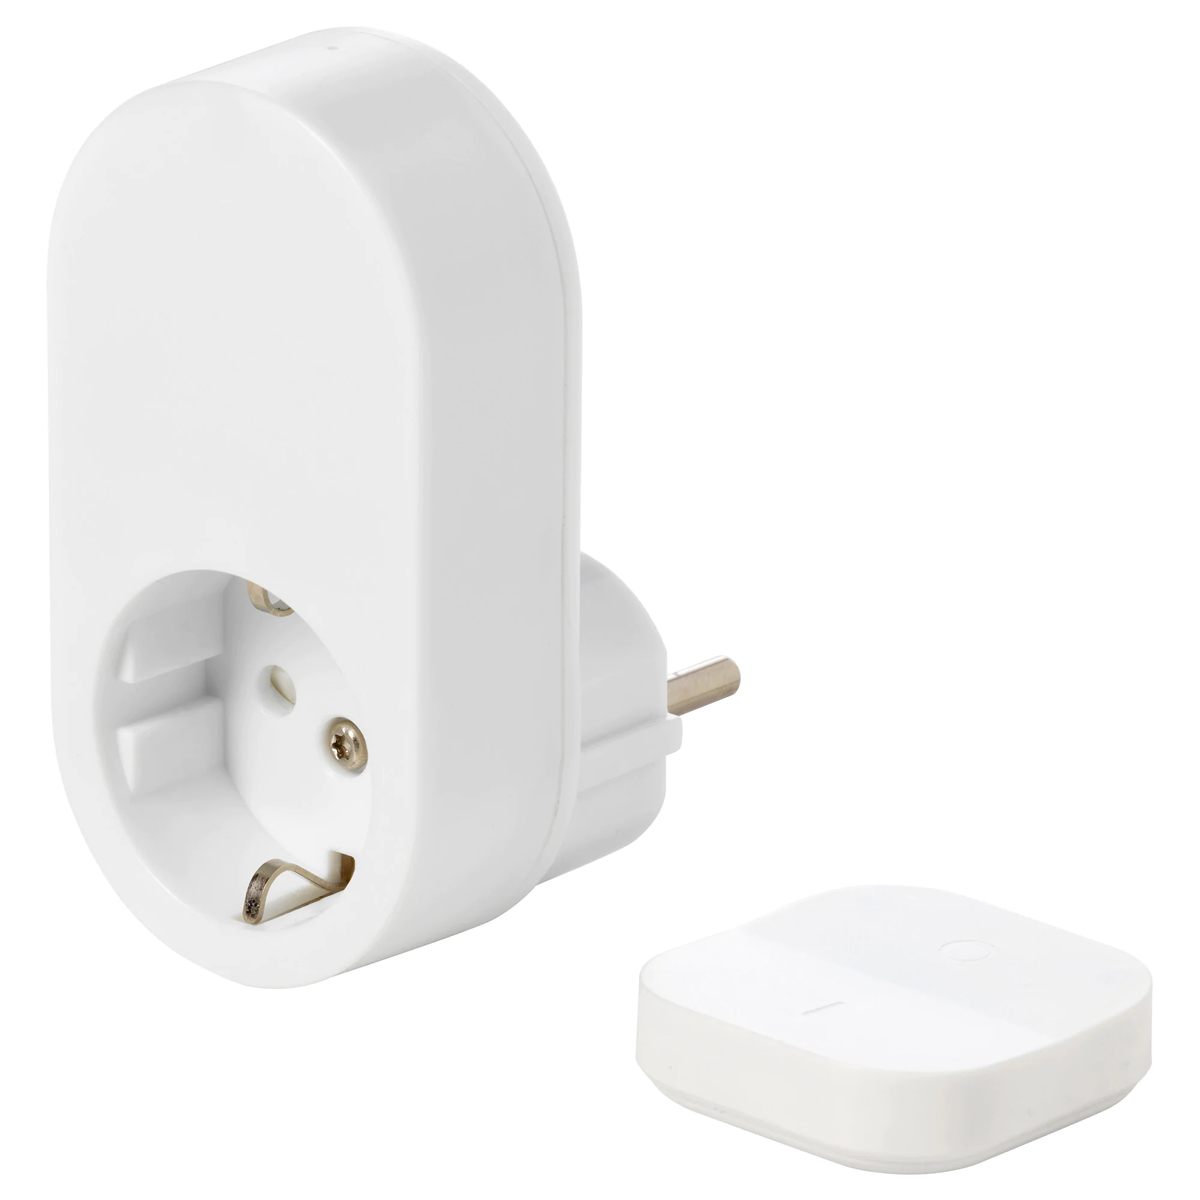 Ikea Tradfri Ikea Smart Plug Available In Swedish Stores Now Homekit News And